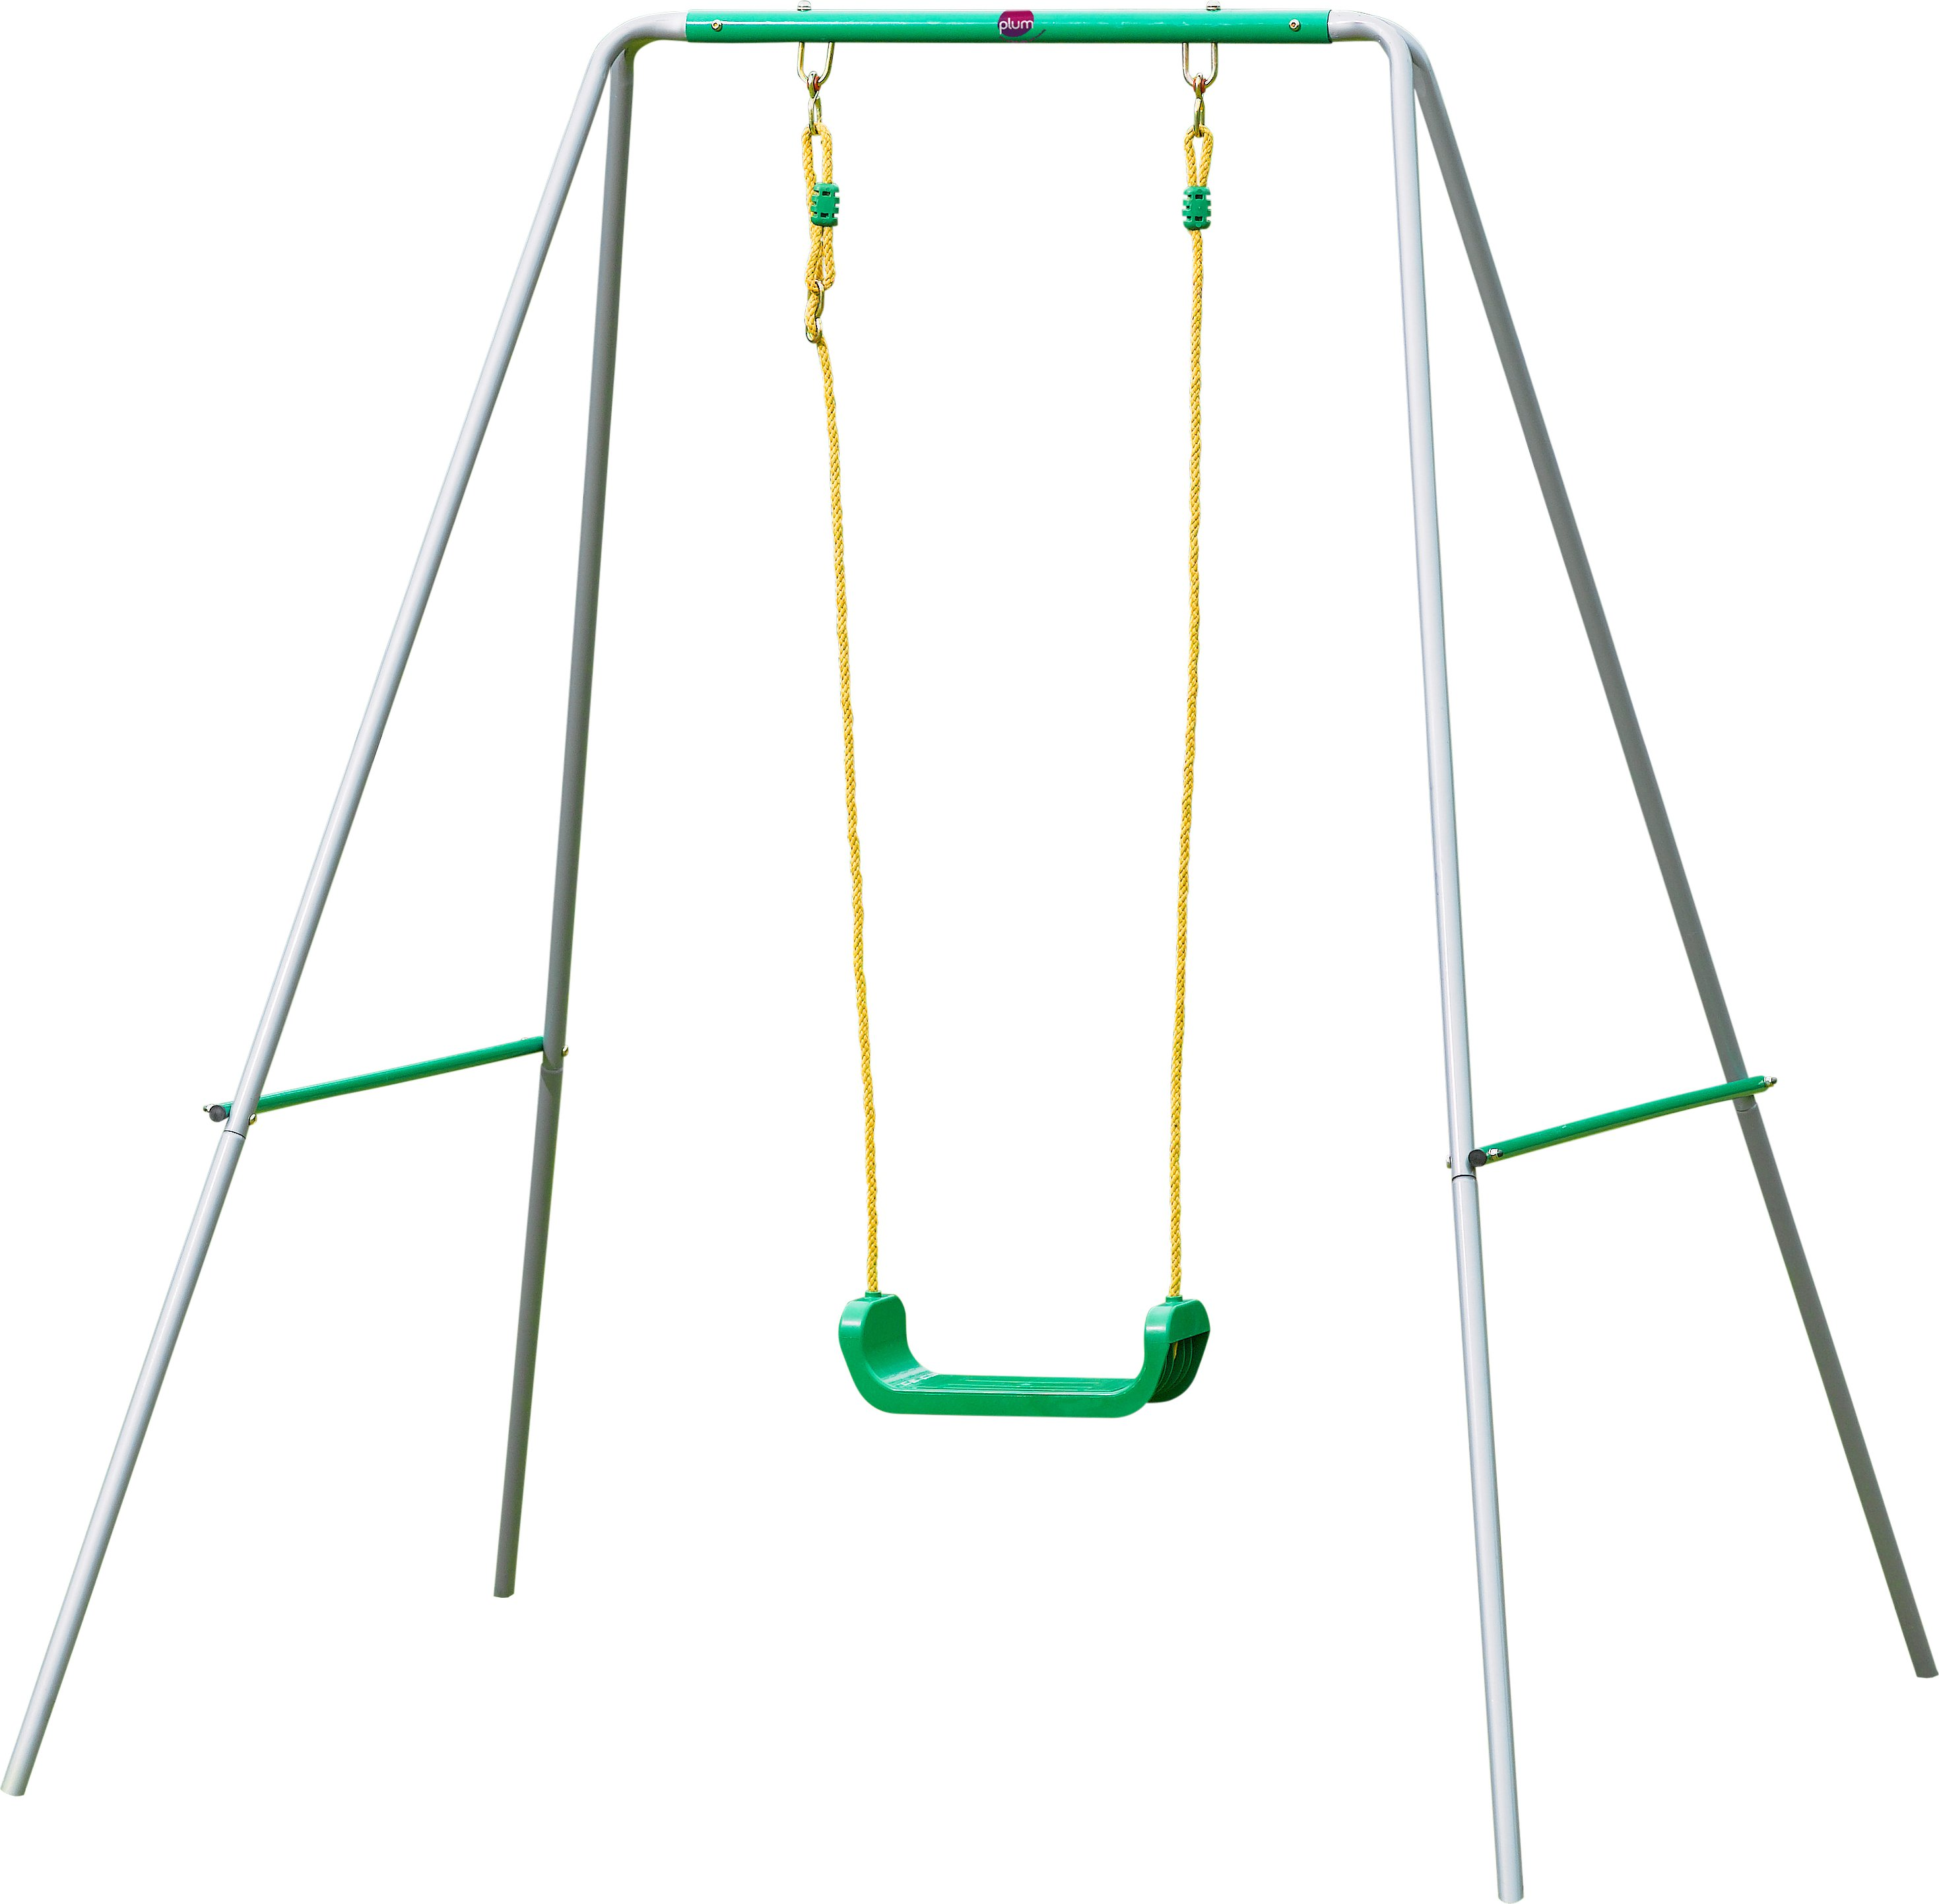 plum divorced singles Let your littlies feel the wind through their hair with the single swing set from plum, pure, simple fun that never goes out of fashion.